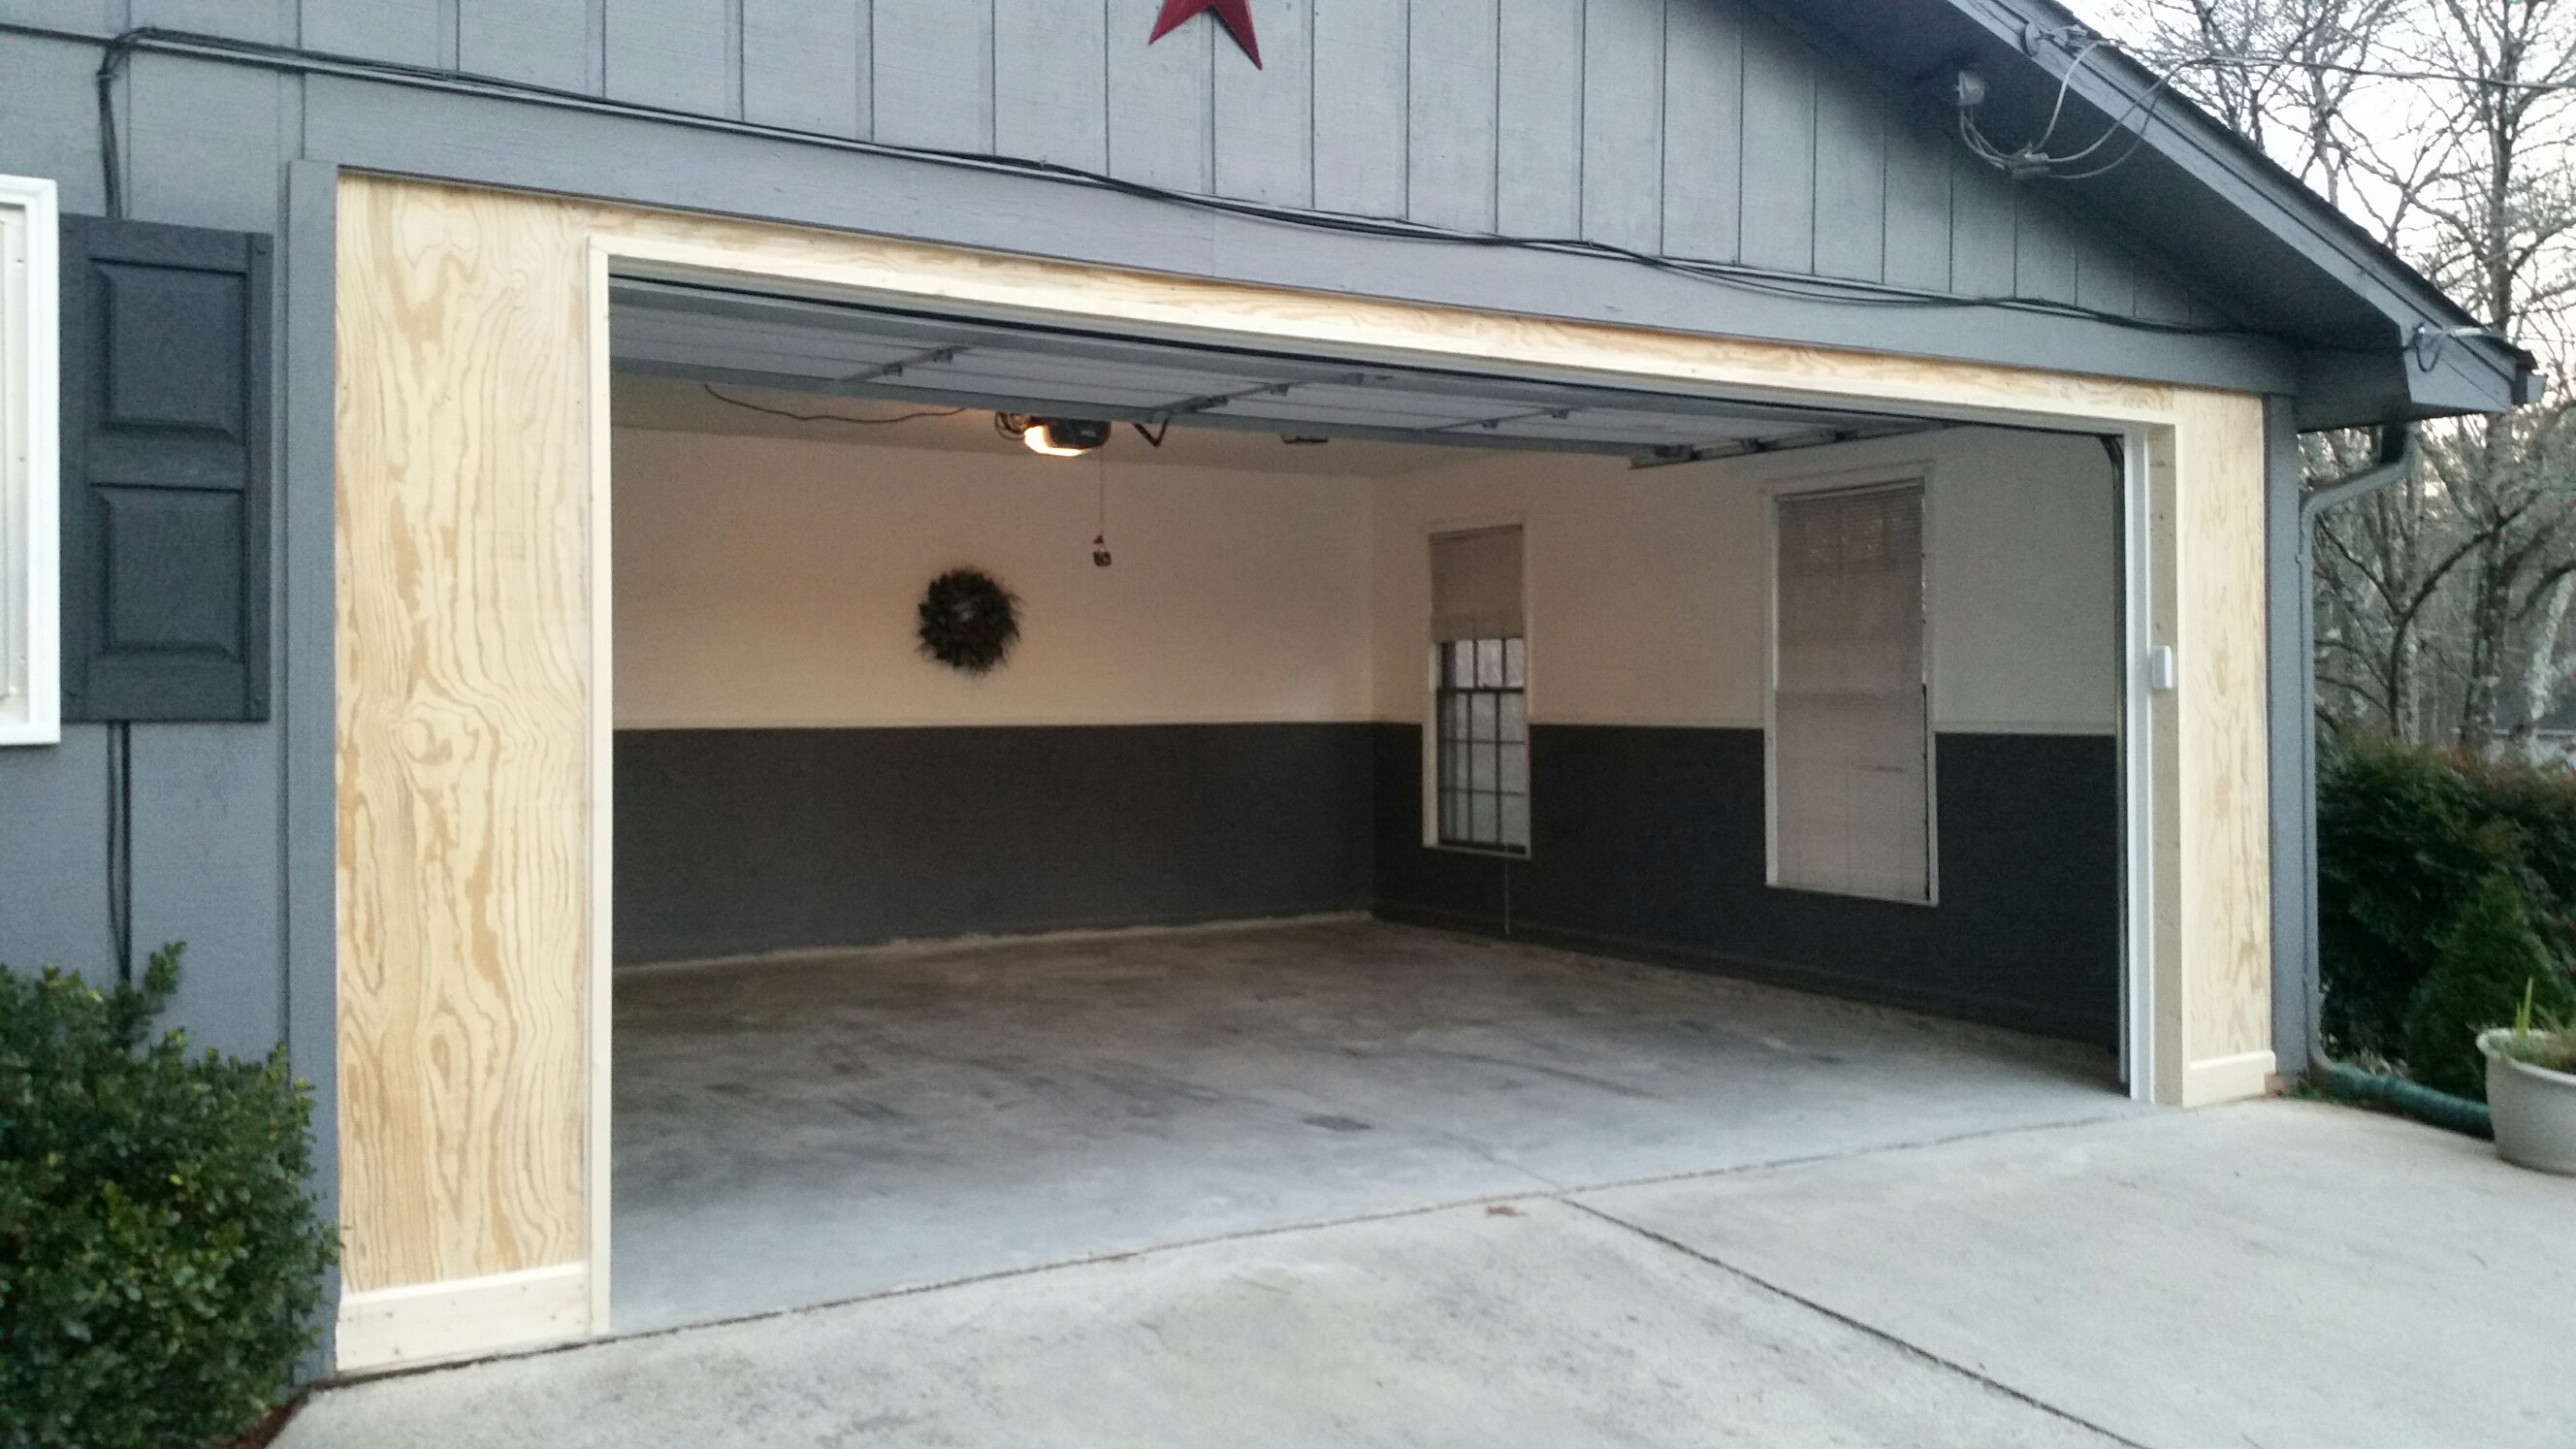 Carport Garage Conversion | Overhead Door Company Half Carport Half Garage